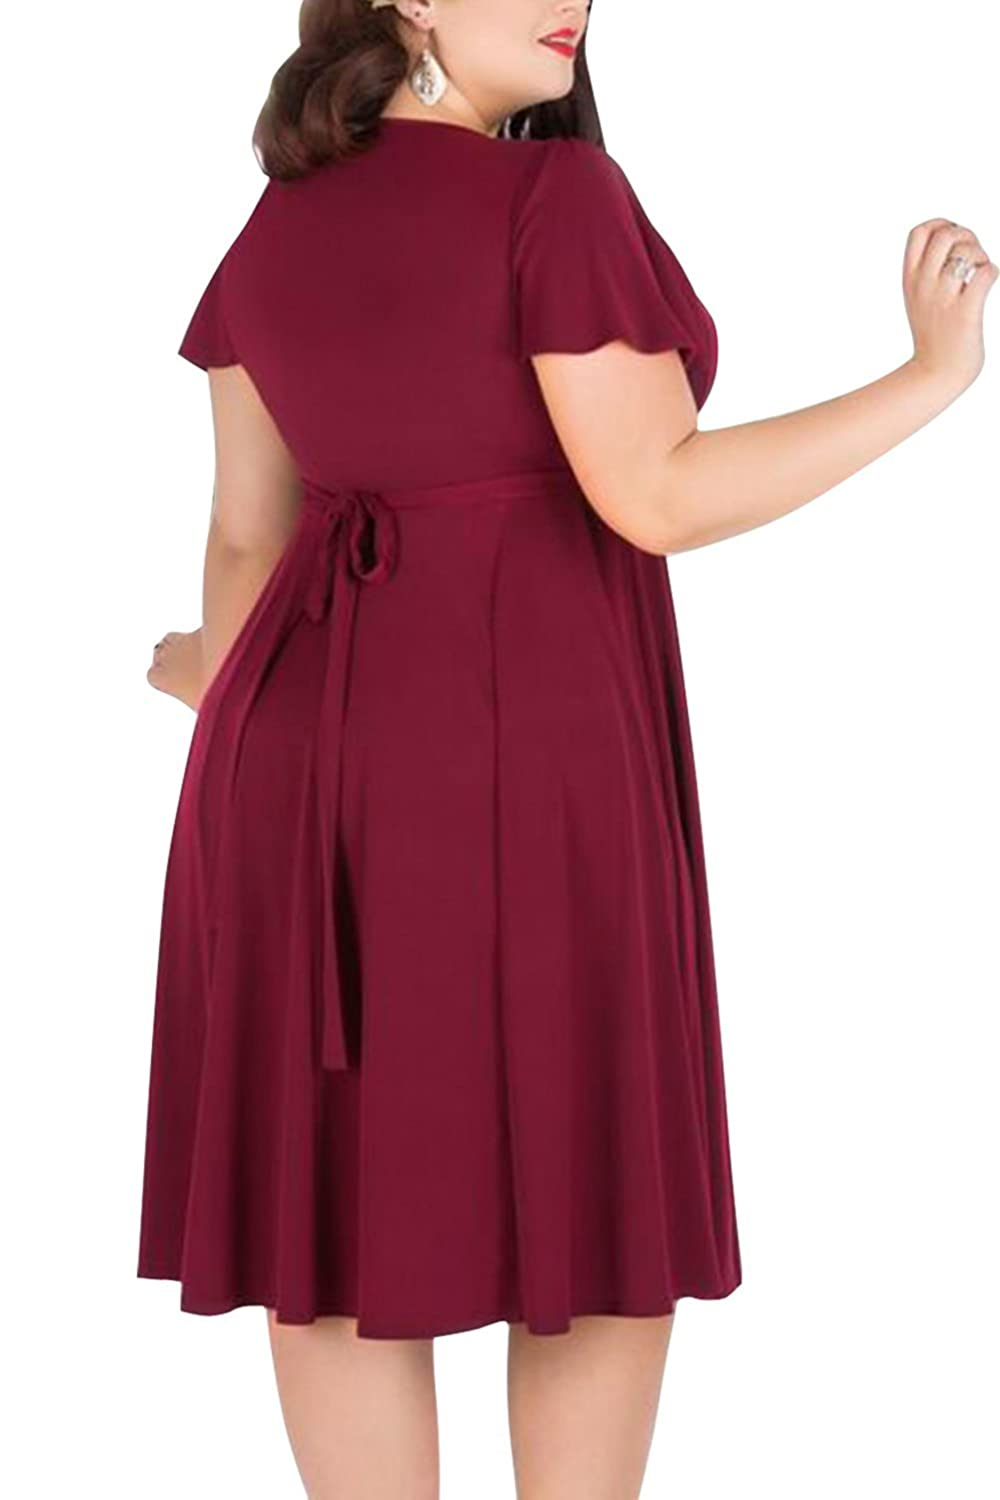 b5c7558328a Nemidor Women s V-Neckline Stretchy Casual Midi Plus Size Bridesmaid Dress